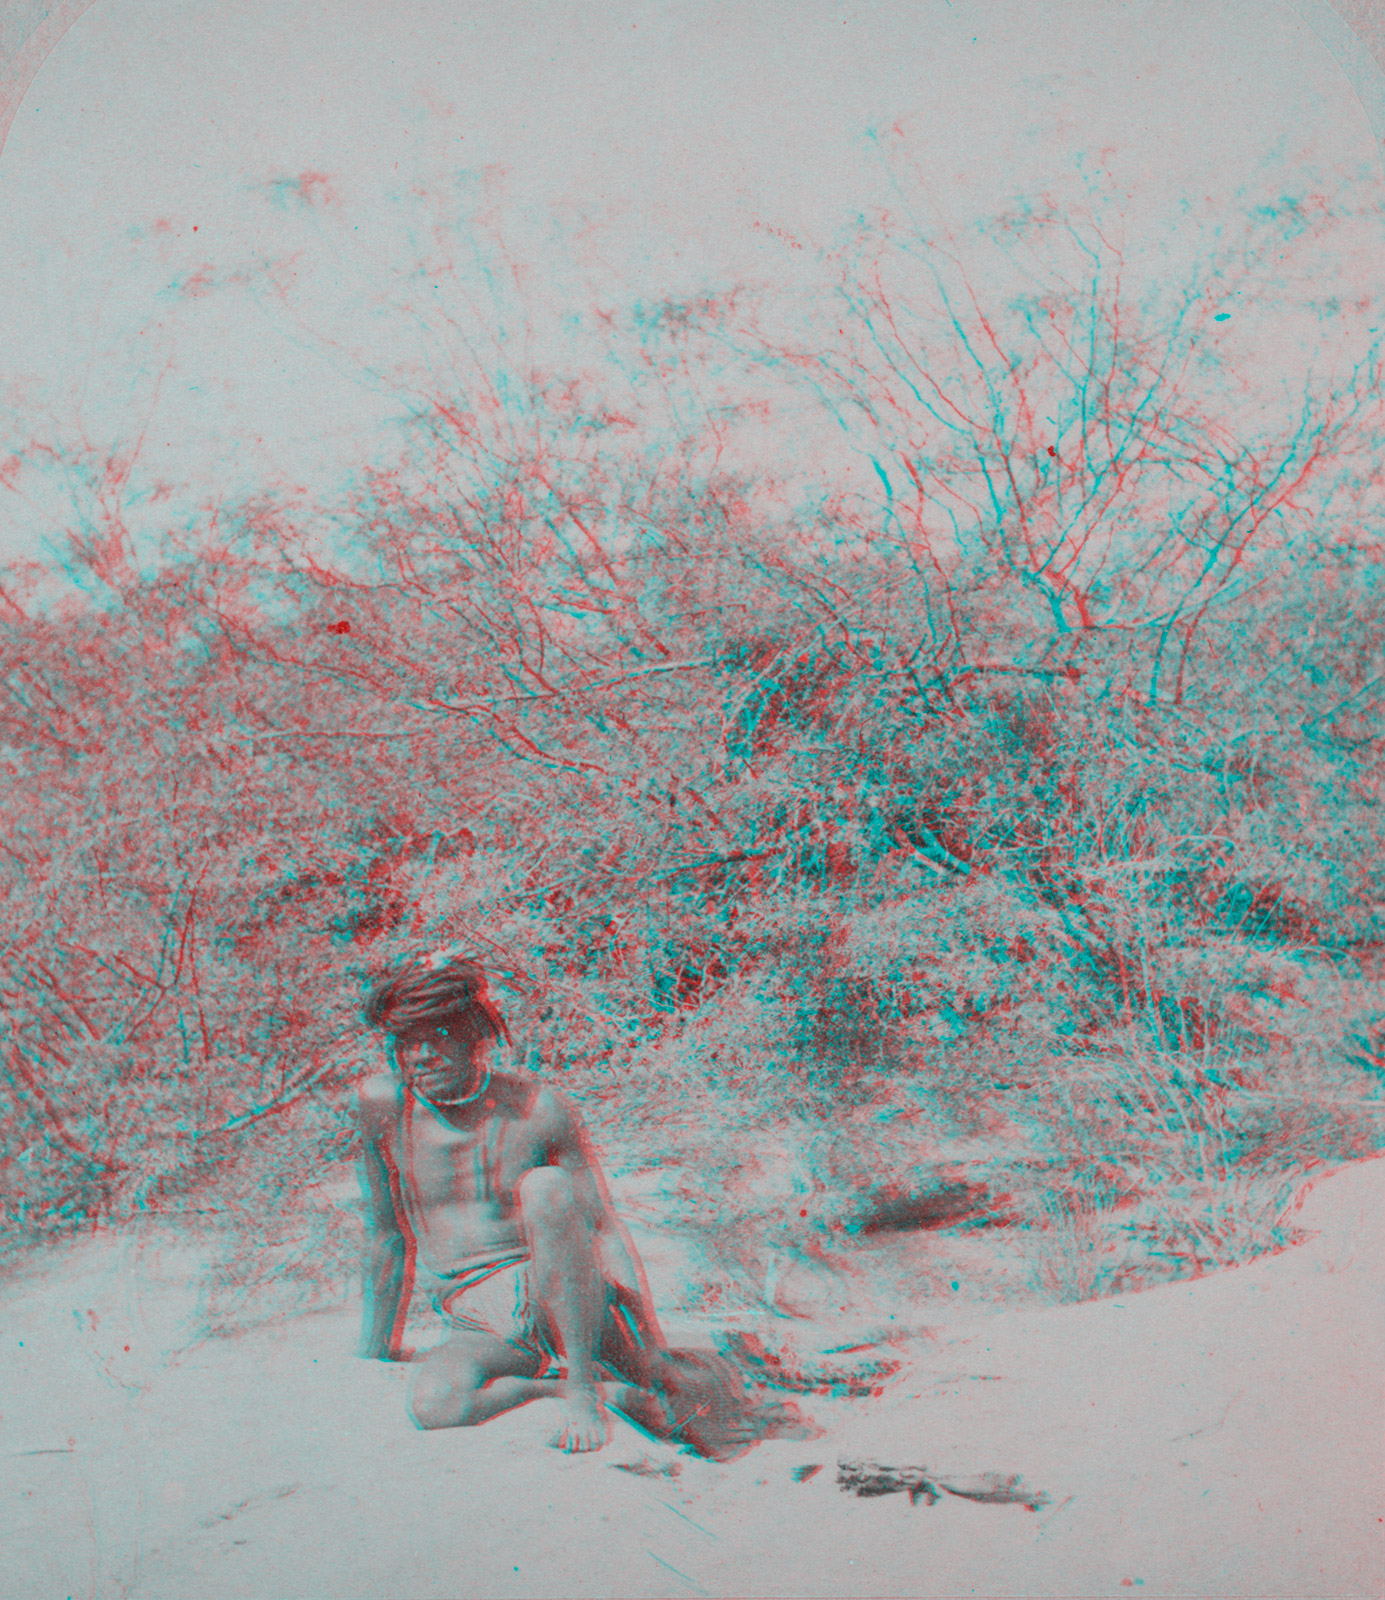 Indigenous Peoples' Day Anaglyph 4